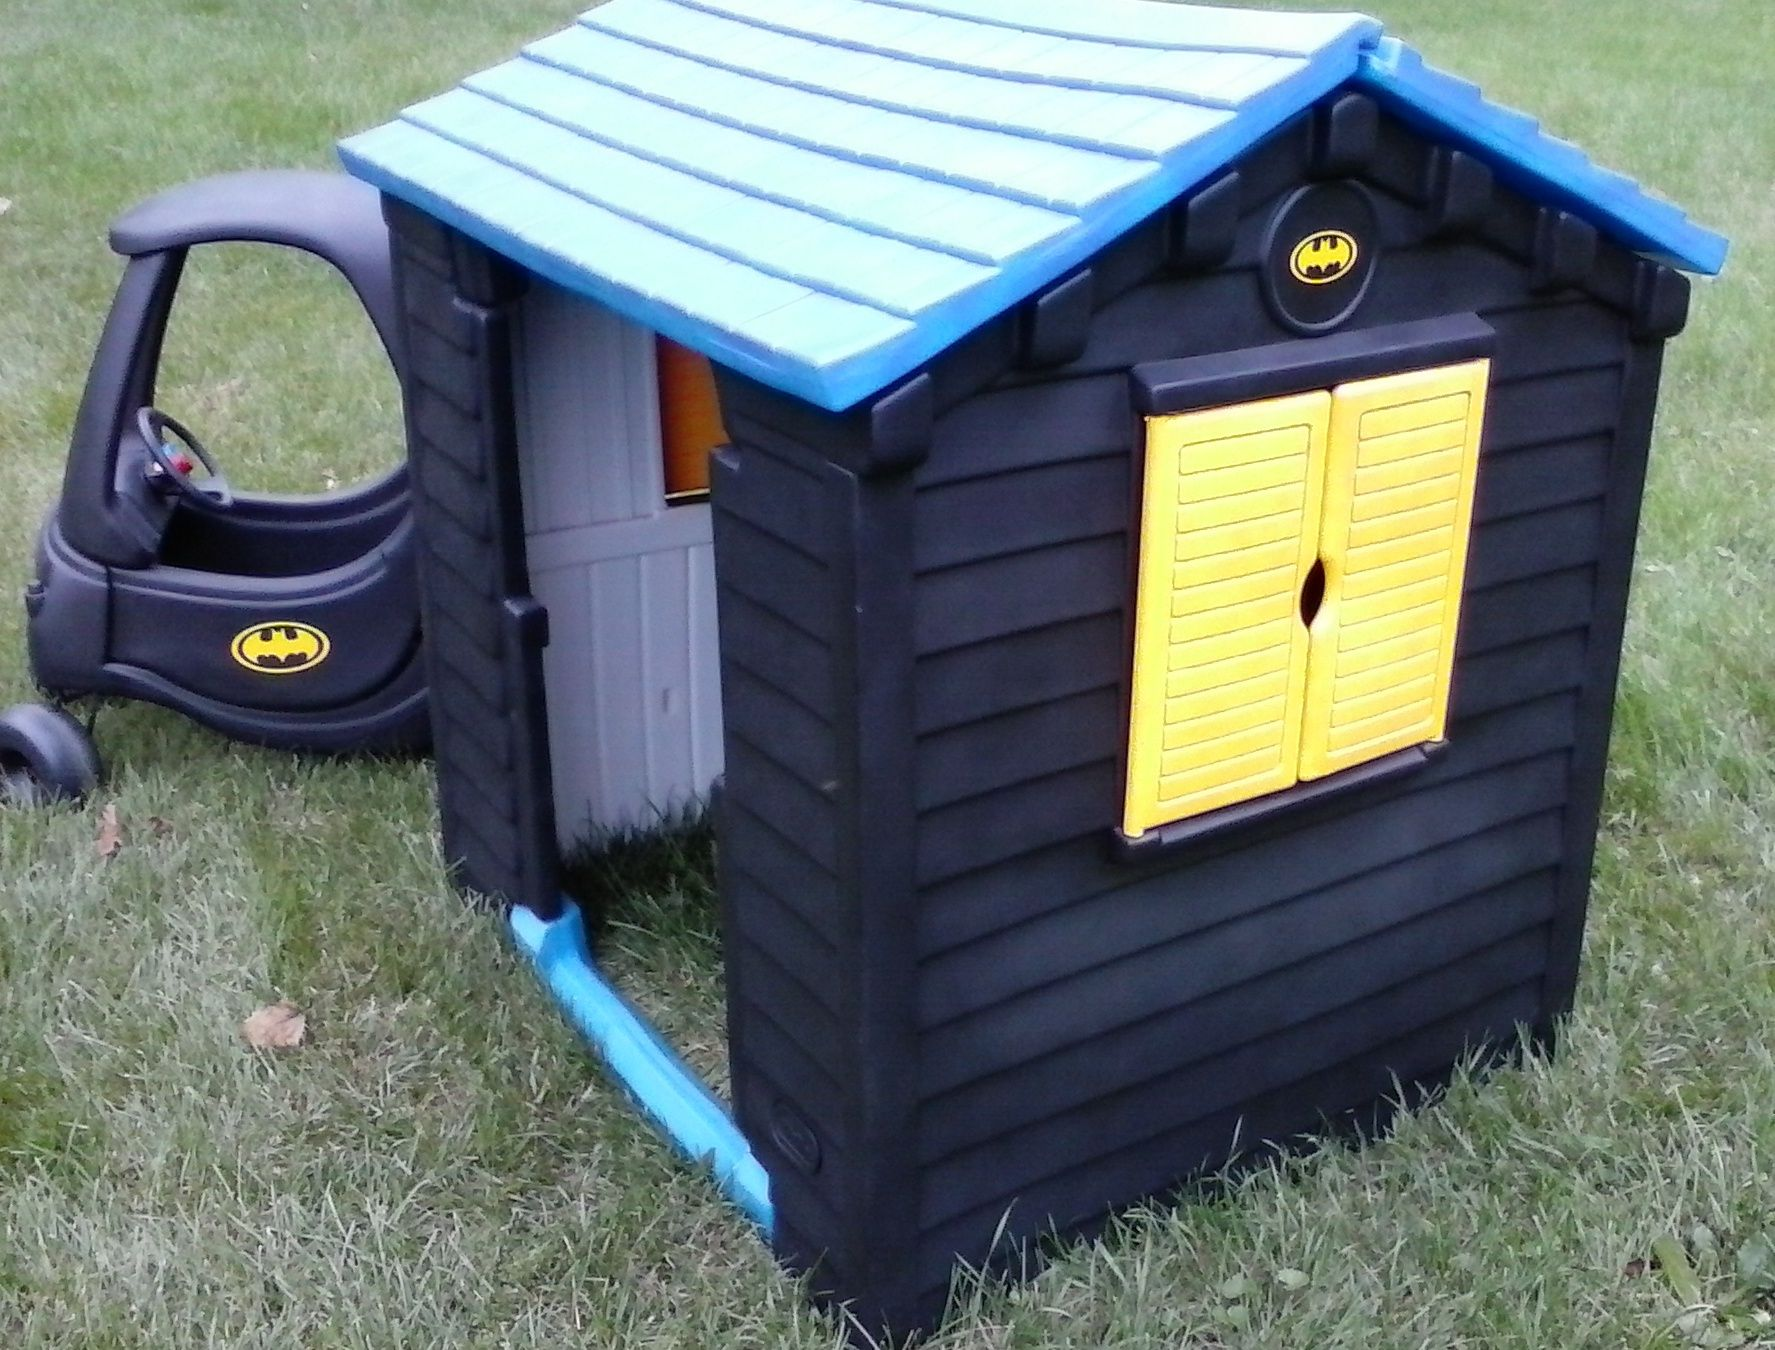 Batman Batcave Batmobile Little Tikes Playhouse Cozy Coupe